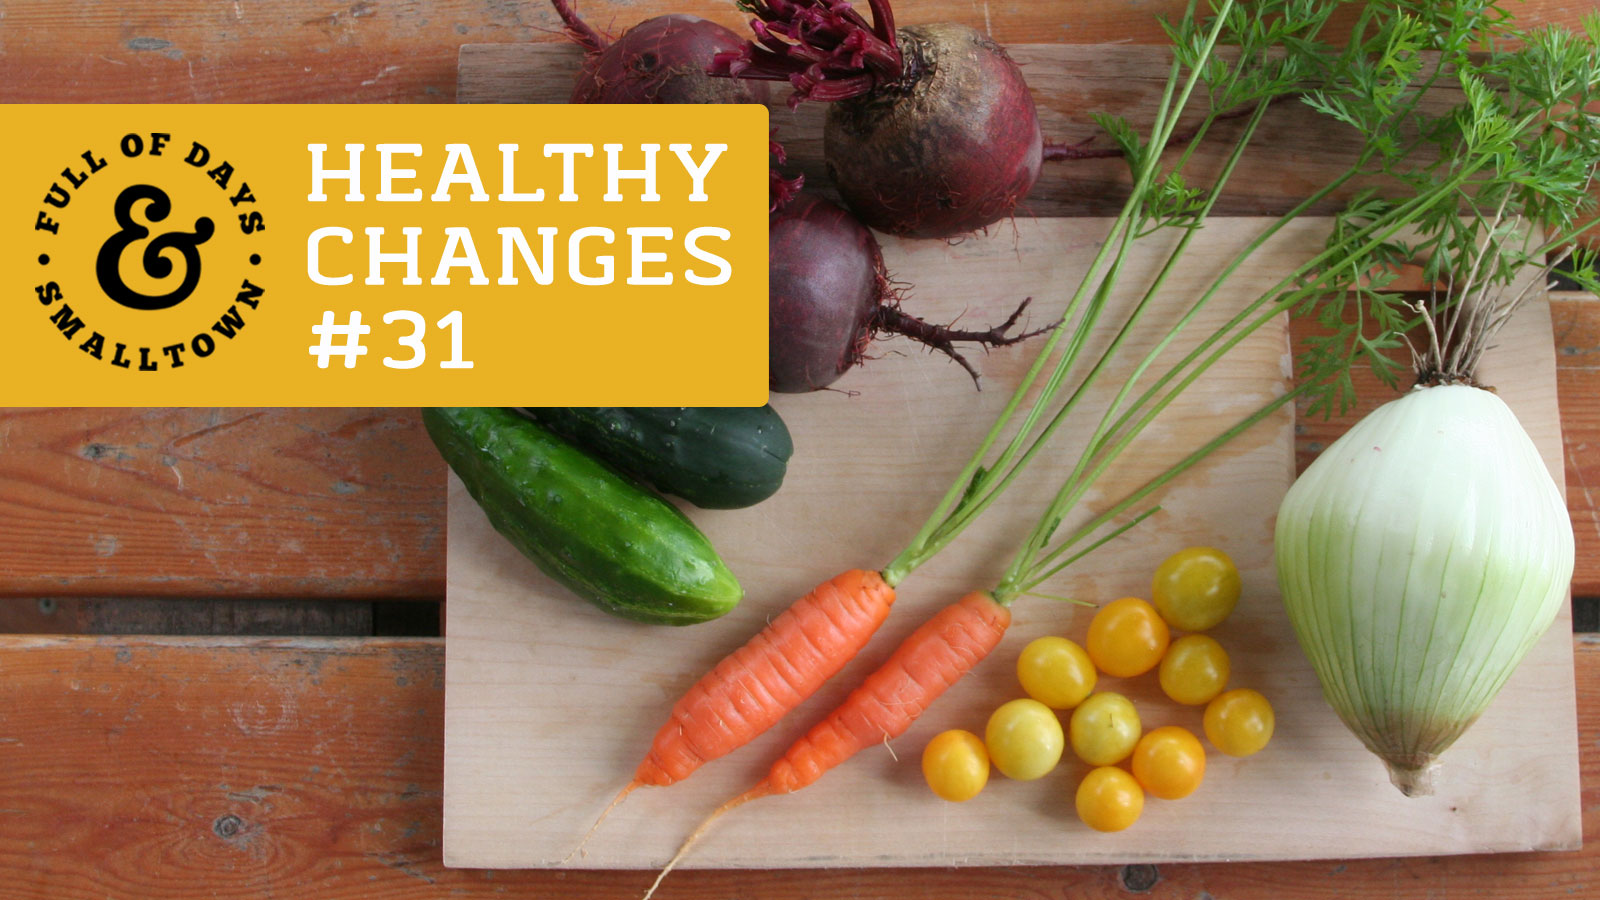 Healthy-Changes-31_Full-of-Days_Eat-More-Veggies_1600-x-900